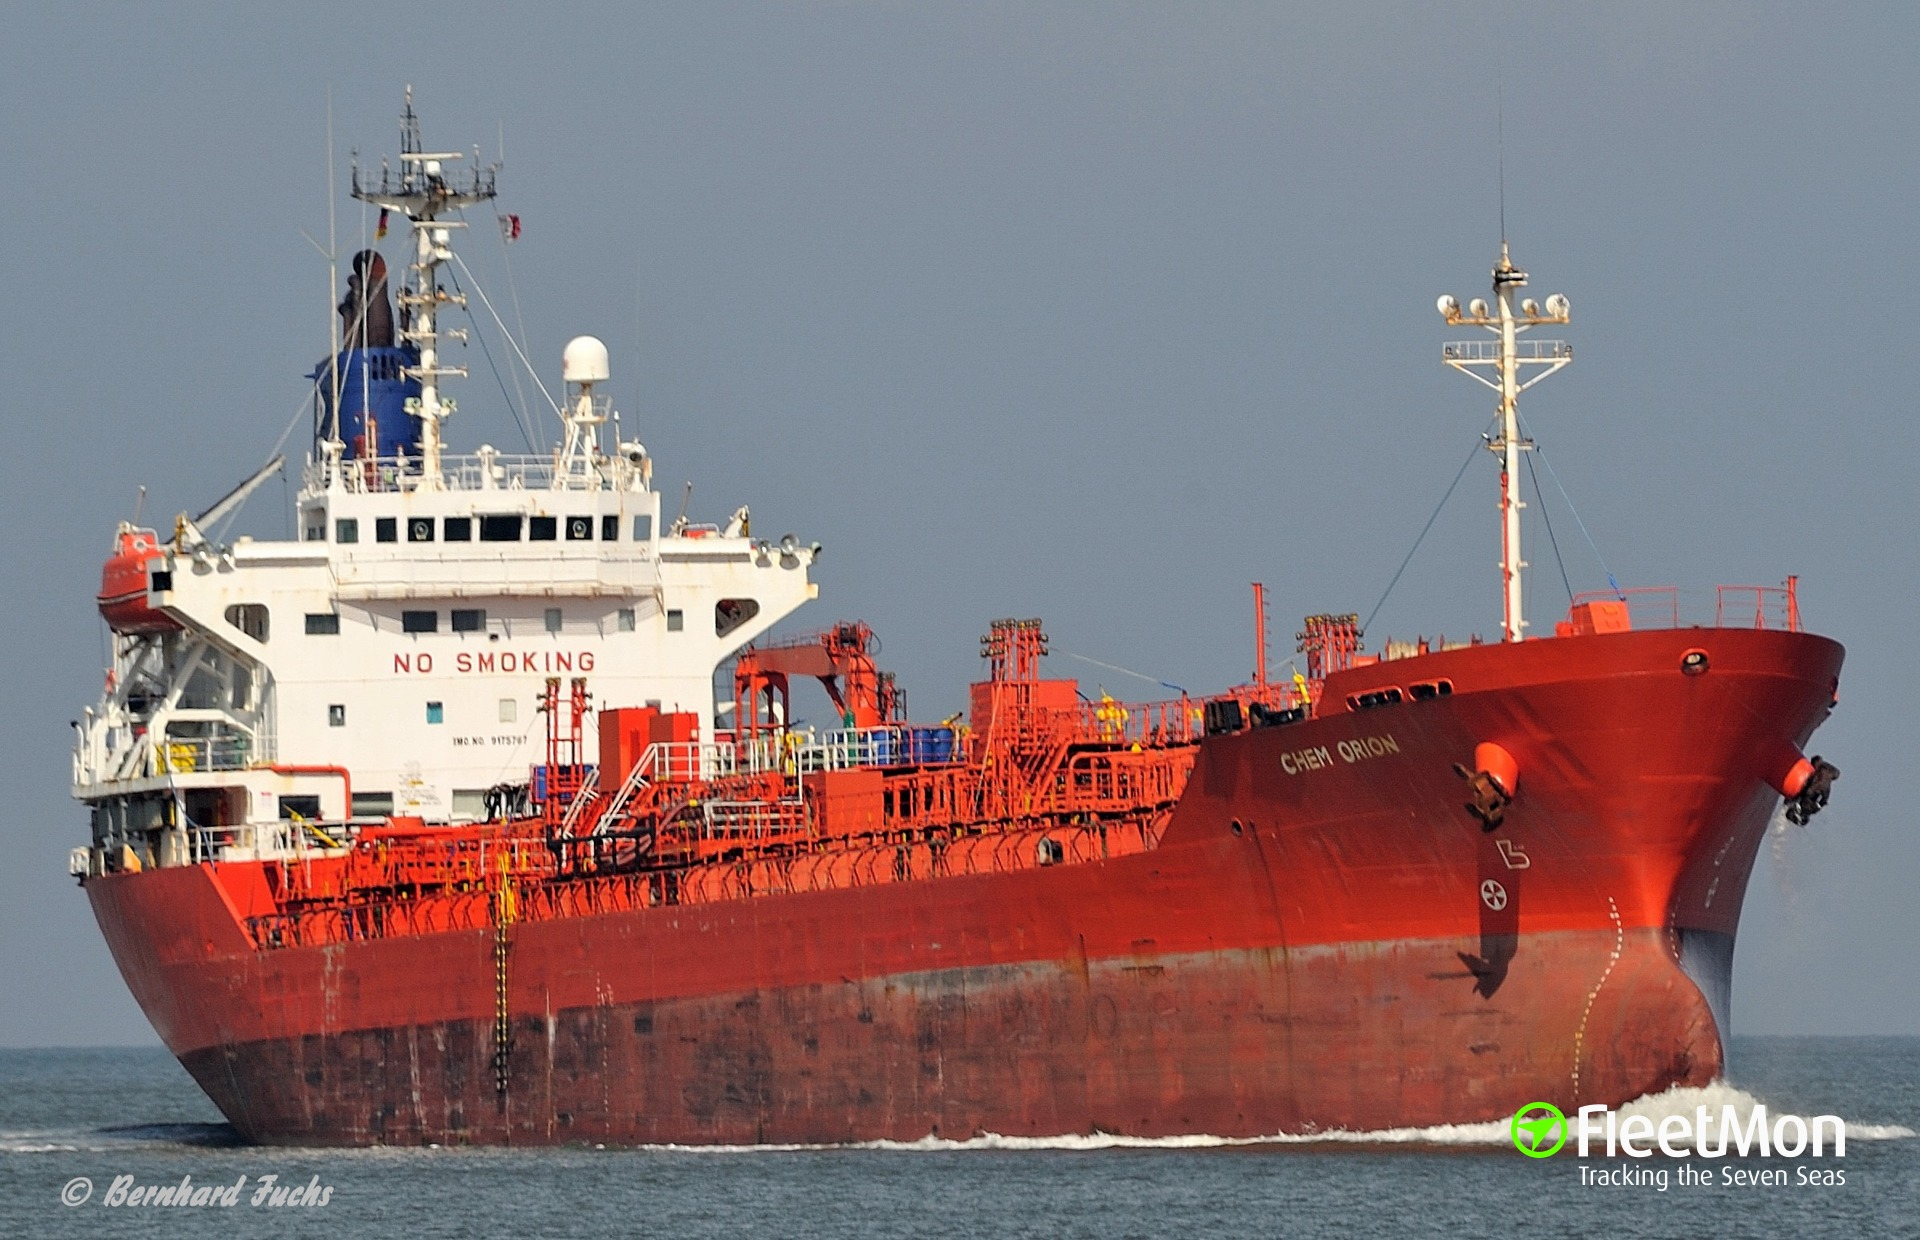 Tanker Chem Orion suffered engine failure leaving Rotterdam